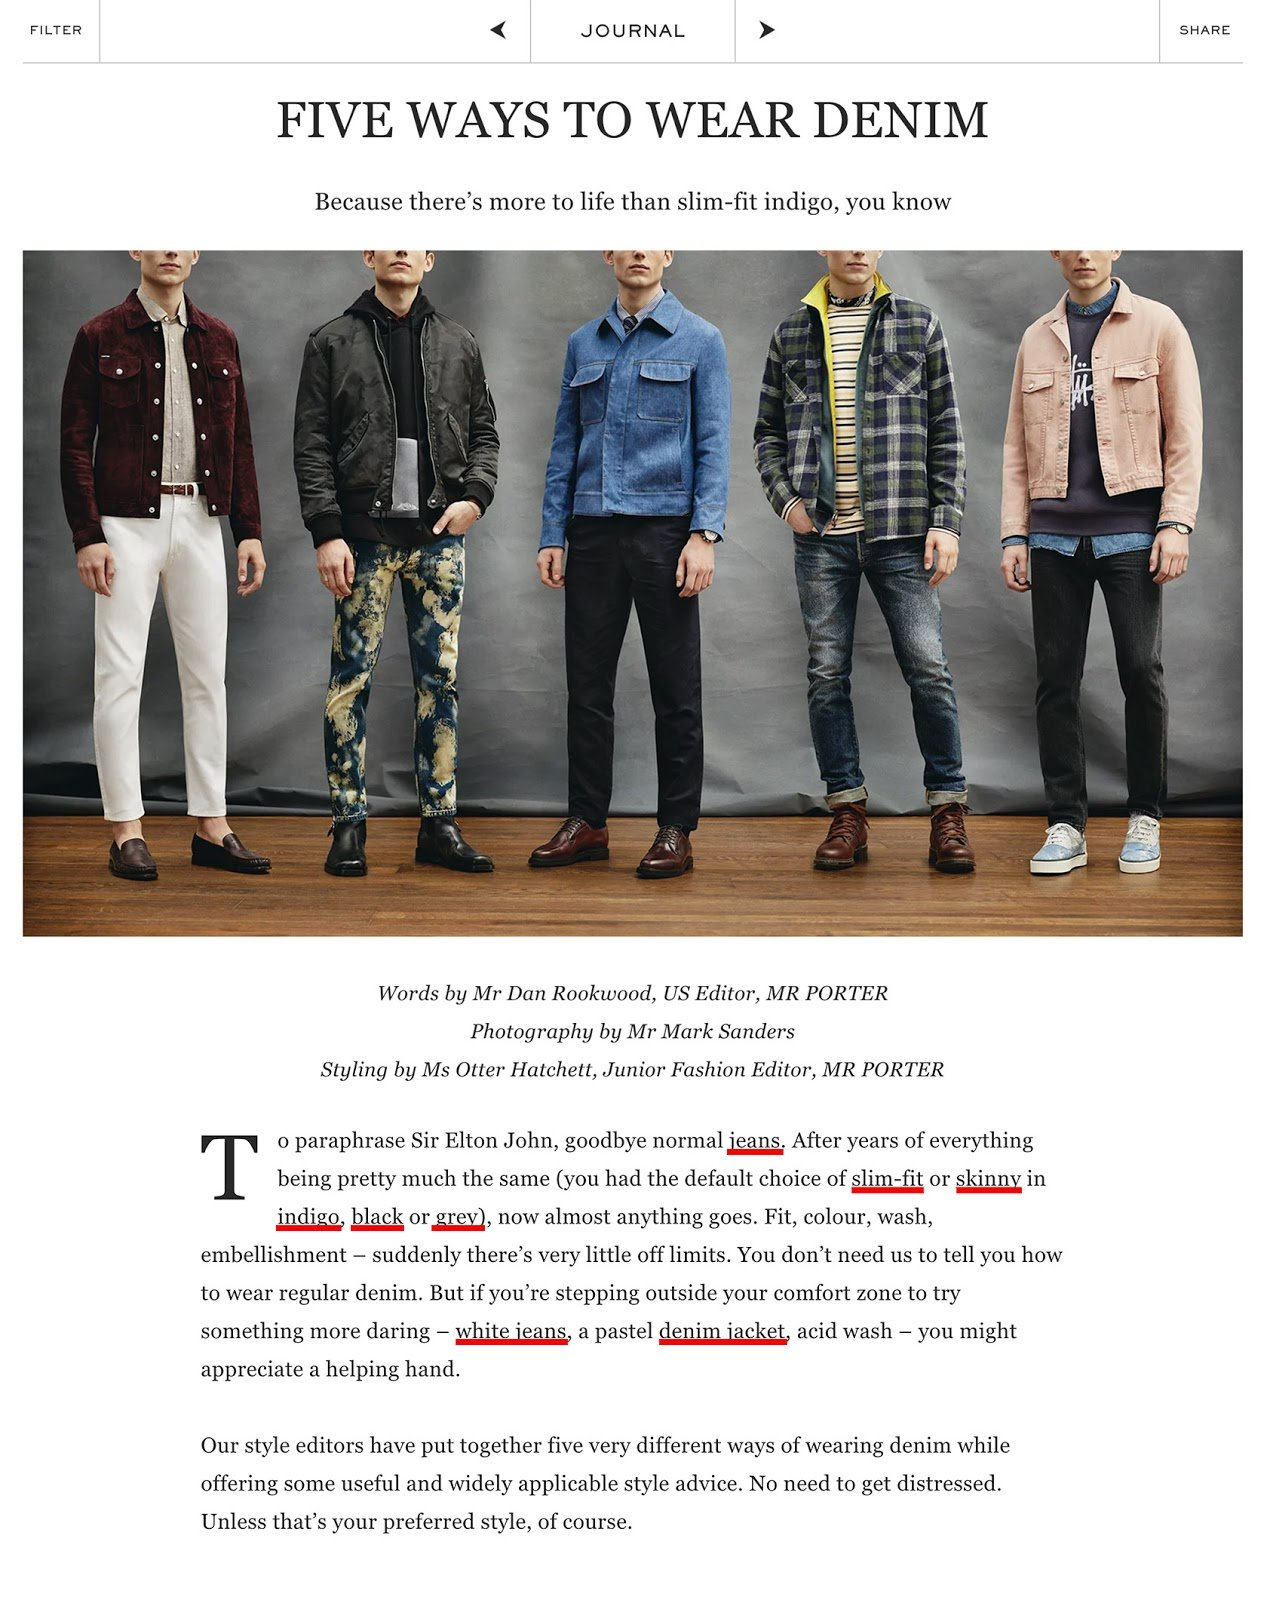 Image of Mr. Porter's links - Also a sales funnel example to convert more customers